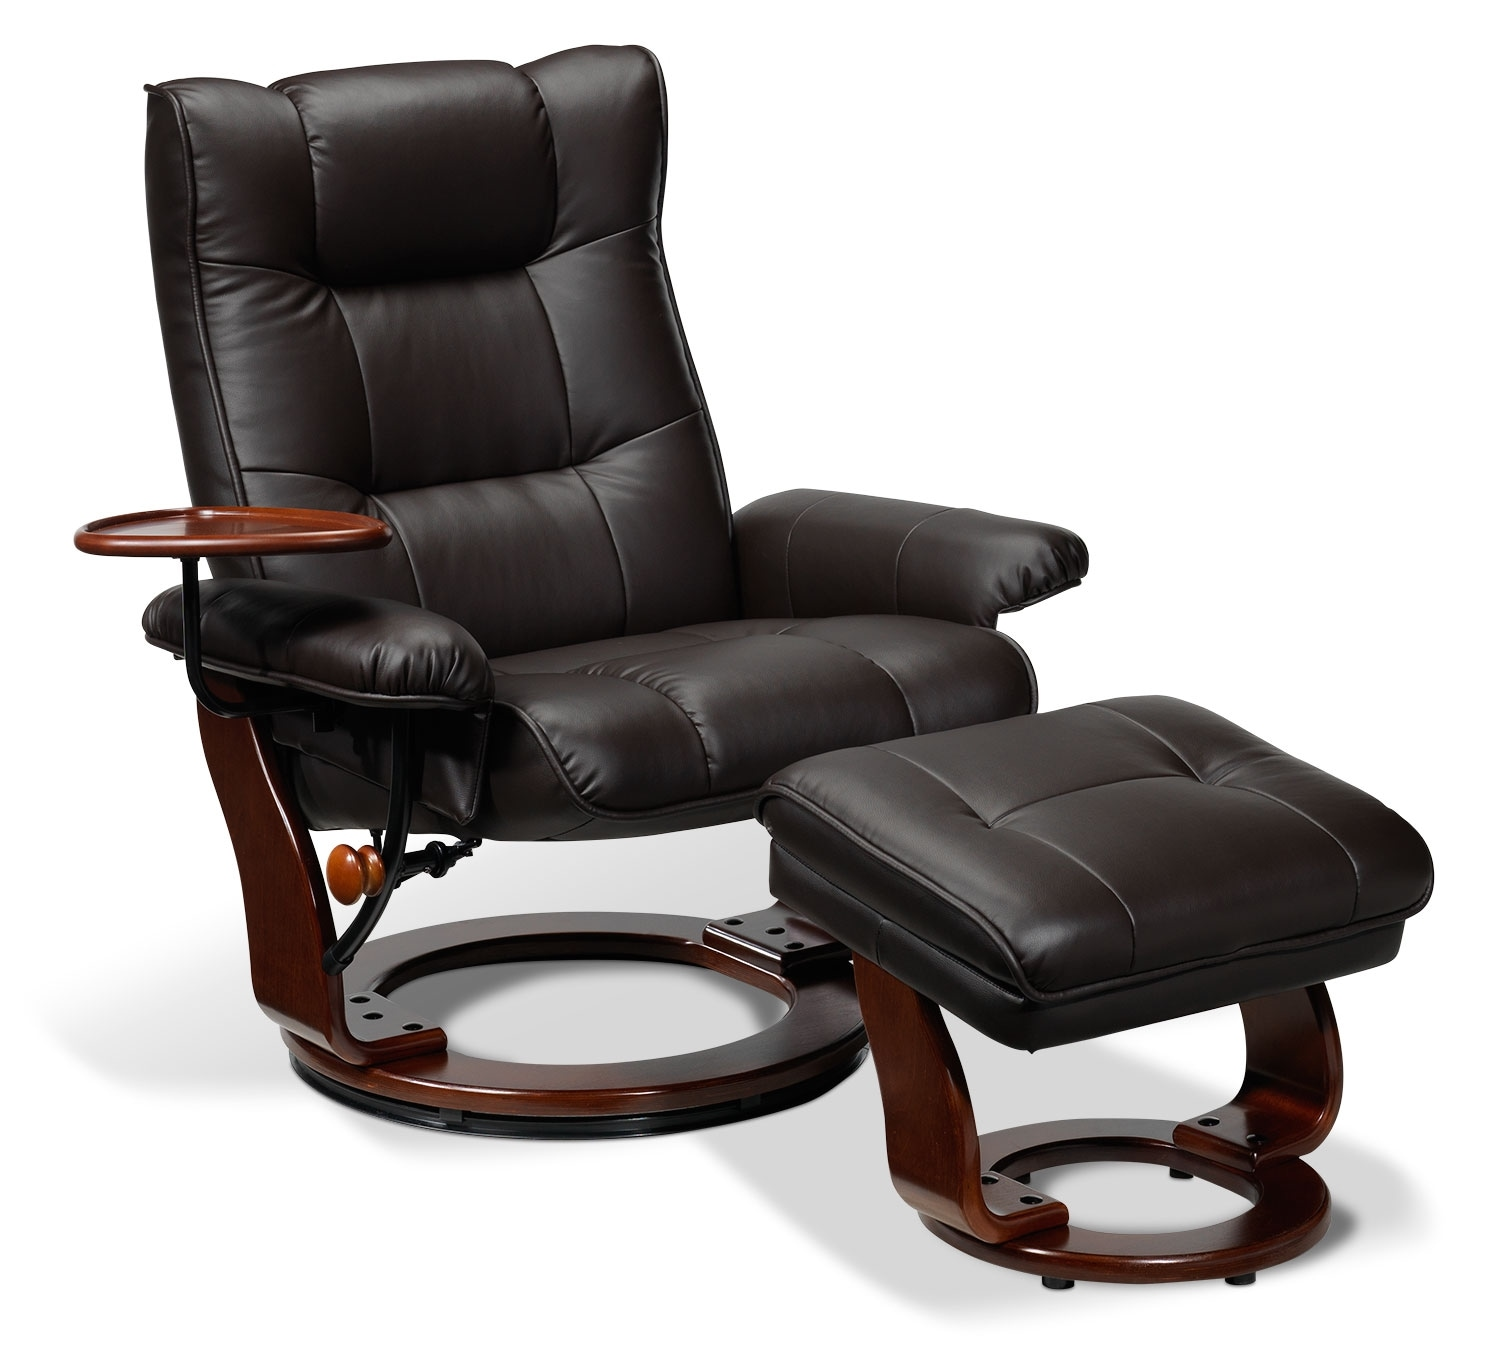 [Canora Chair and Ottoman - Deep Espresso]